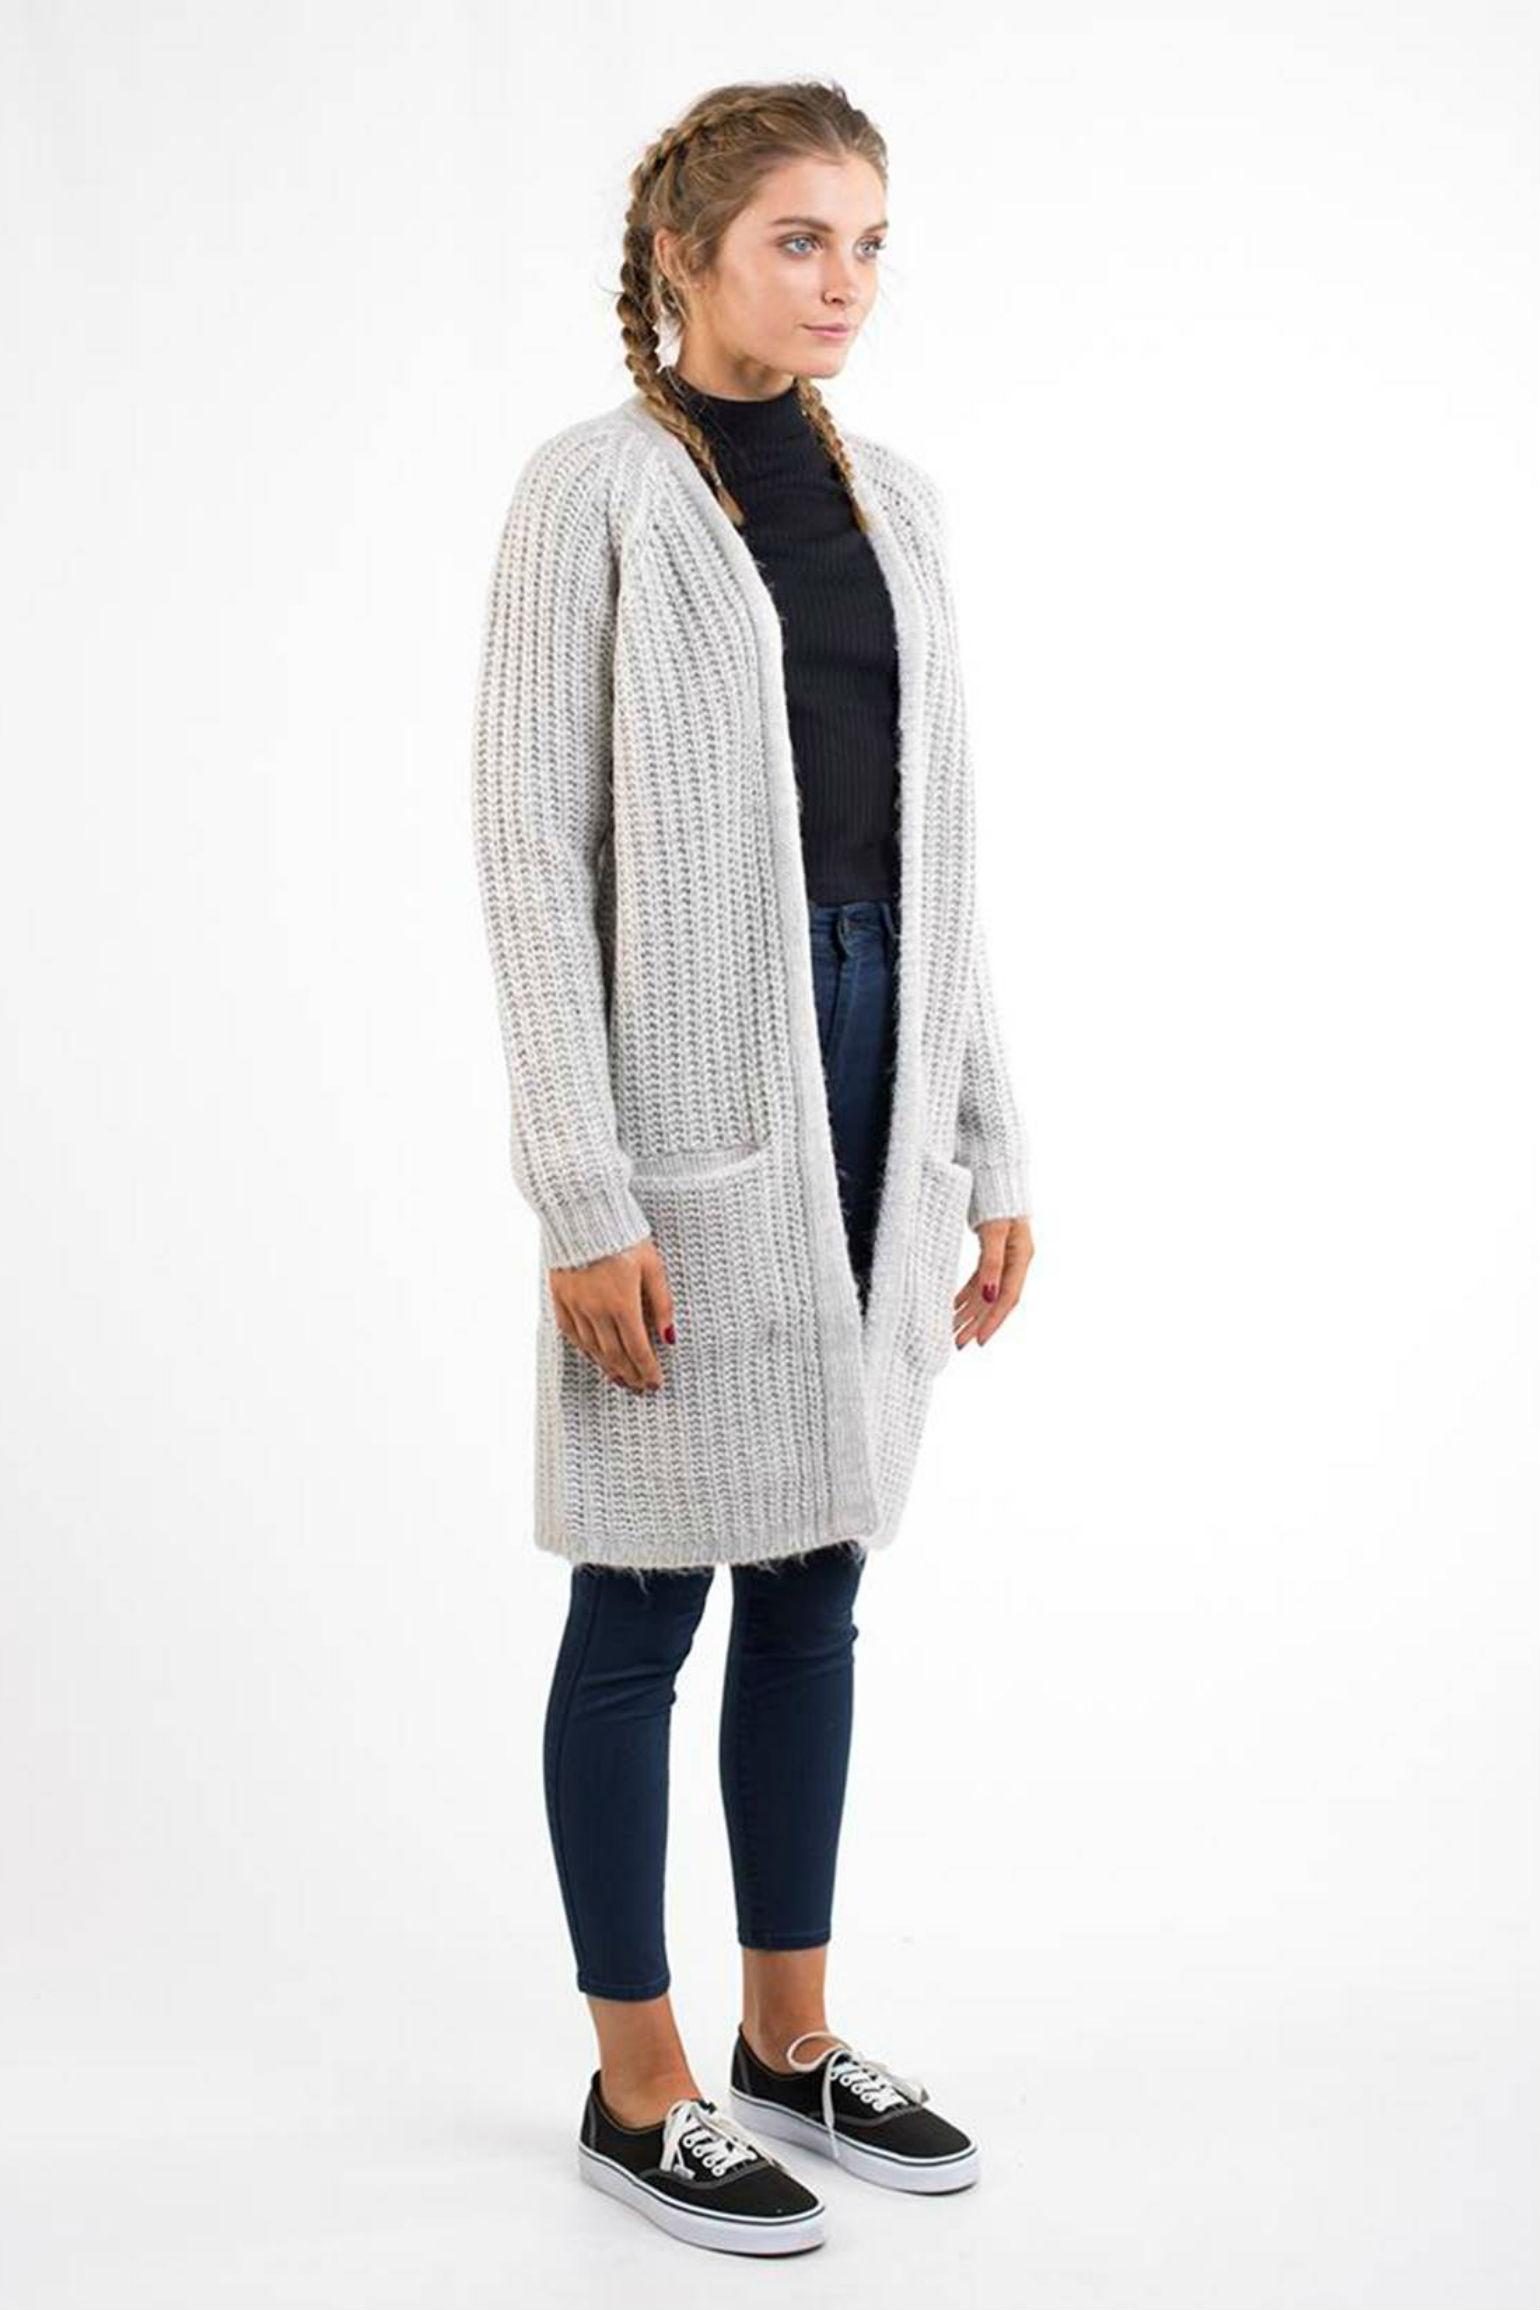 All About Eve Knit Cardi